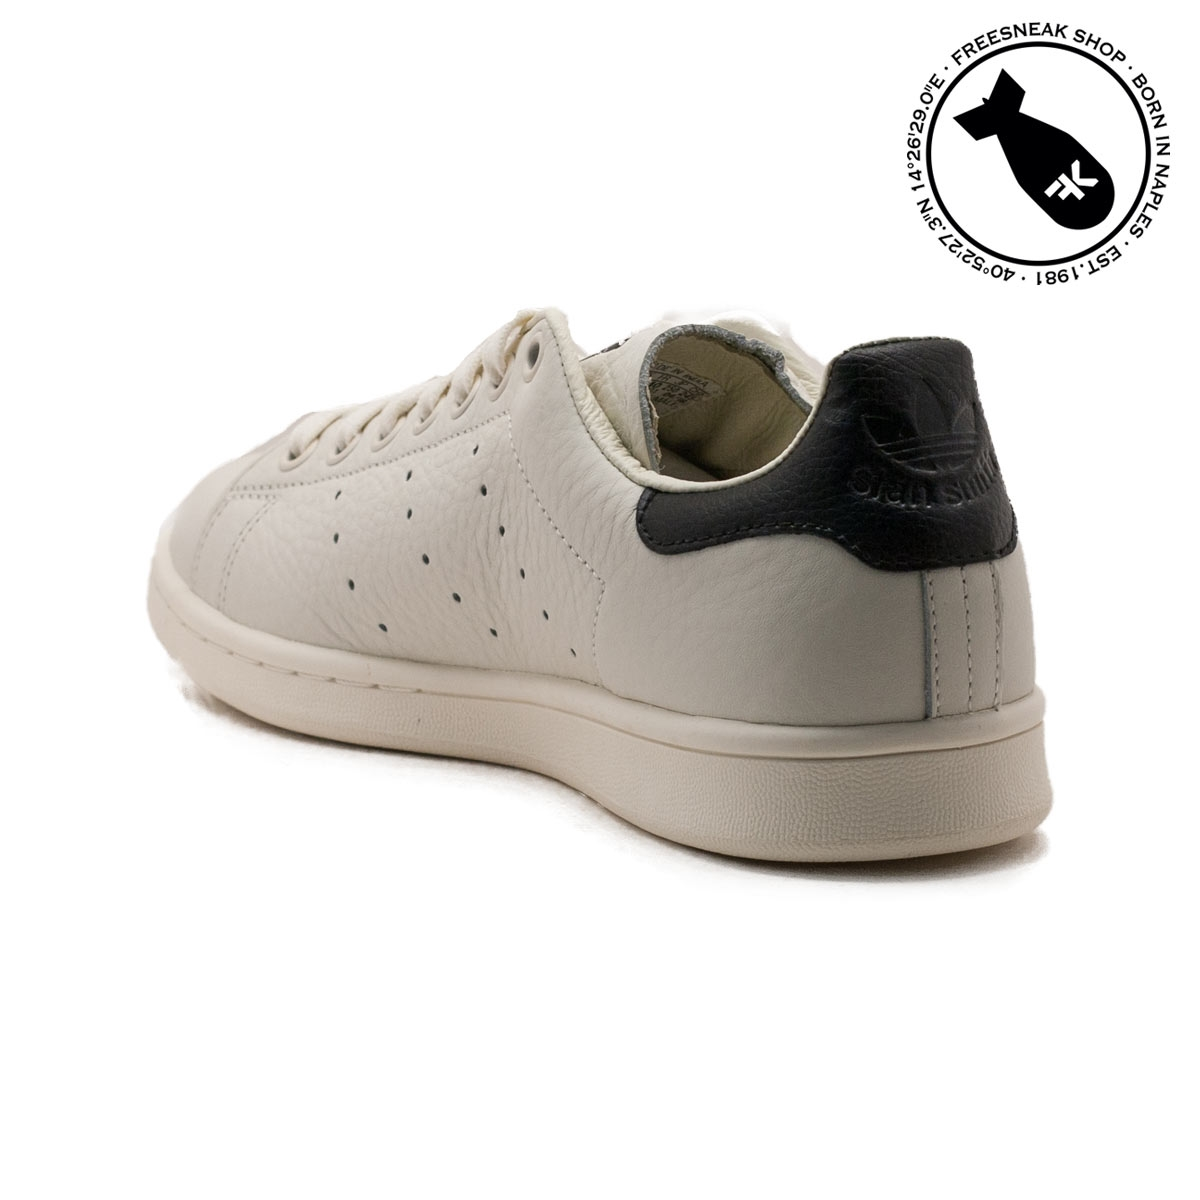 official photos 30a42 c9fec Sneakers Adidas Stan Smith Off White Black B37897 | Freesneak